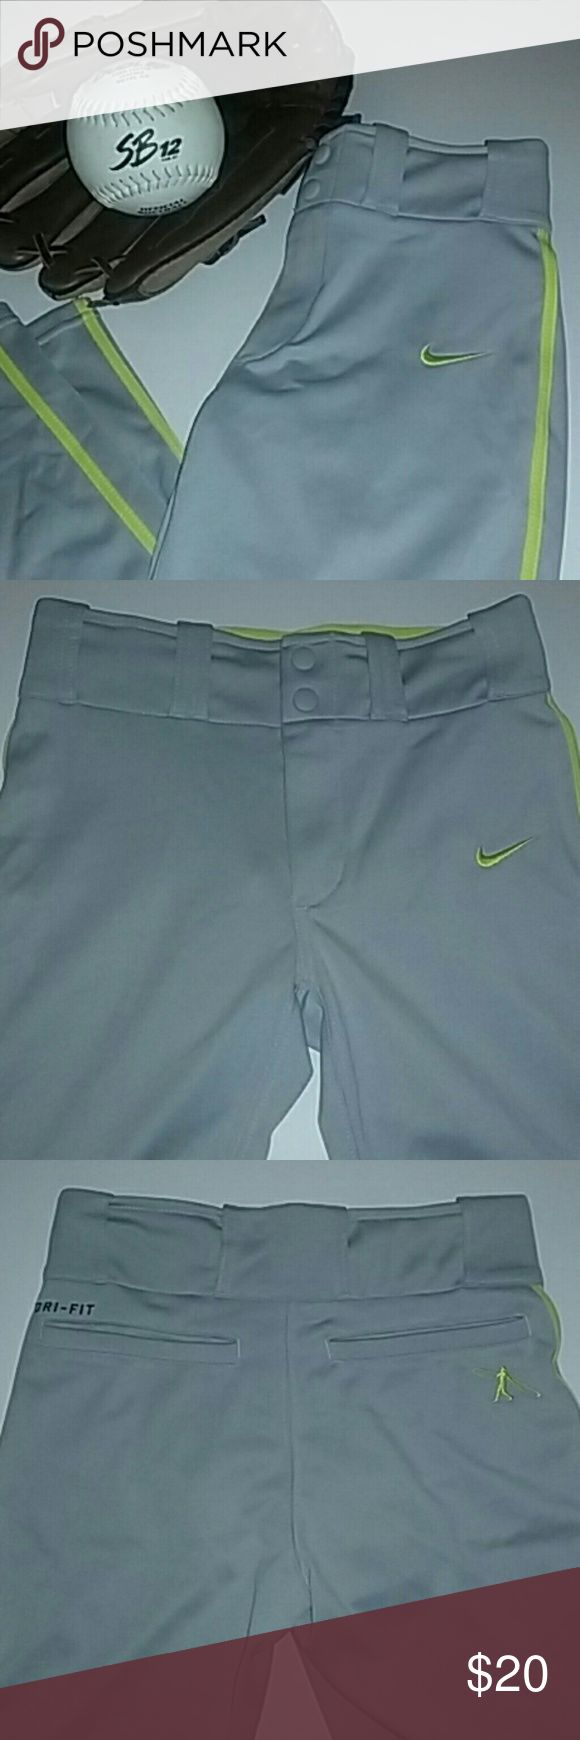 Boys Nike Baseball Pants Boys or Unisex Baseball/Softball Pants.              NIKE DRI-FIT.                                                               Size Small.                             Two snap buttons with zipper. Two back pockets Color: Yellow/Grey 100% Polyester  These are brand new with tags. $35.00  ⚾⚾⚾⚾⚾⚾⚾⚾⚾⚾⚾⚾⚾⚾⚾ Great for practice or game day! Nike Costumes Seasonal